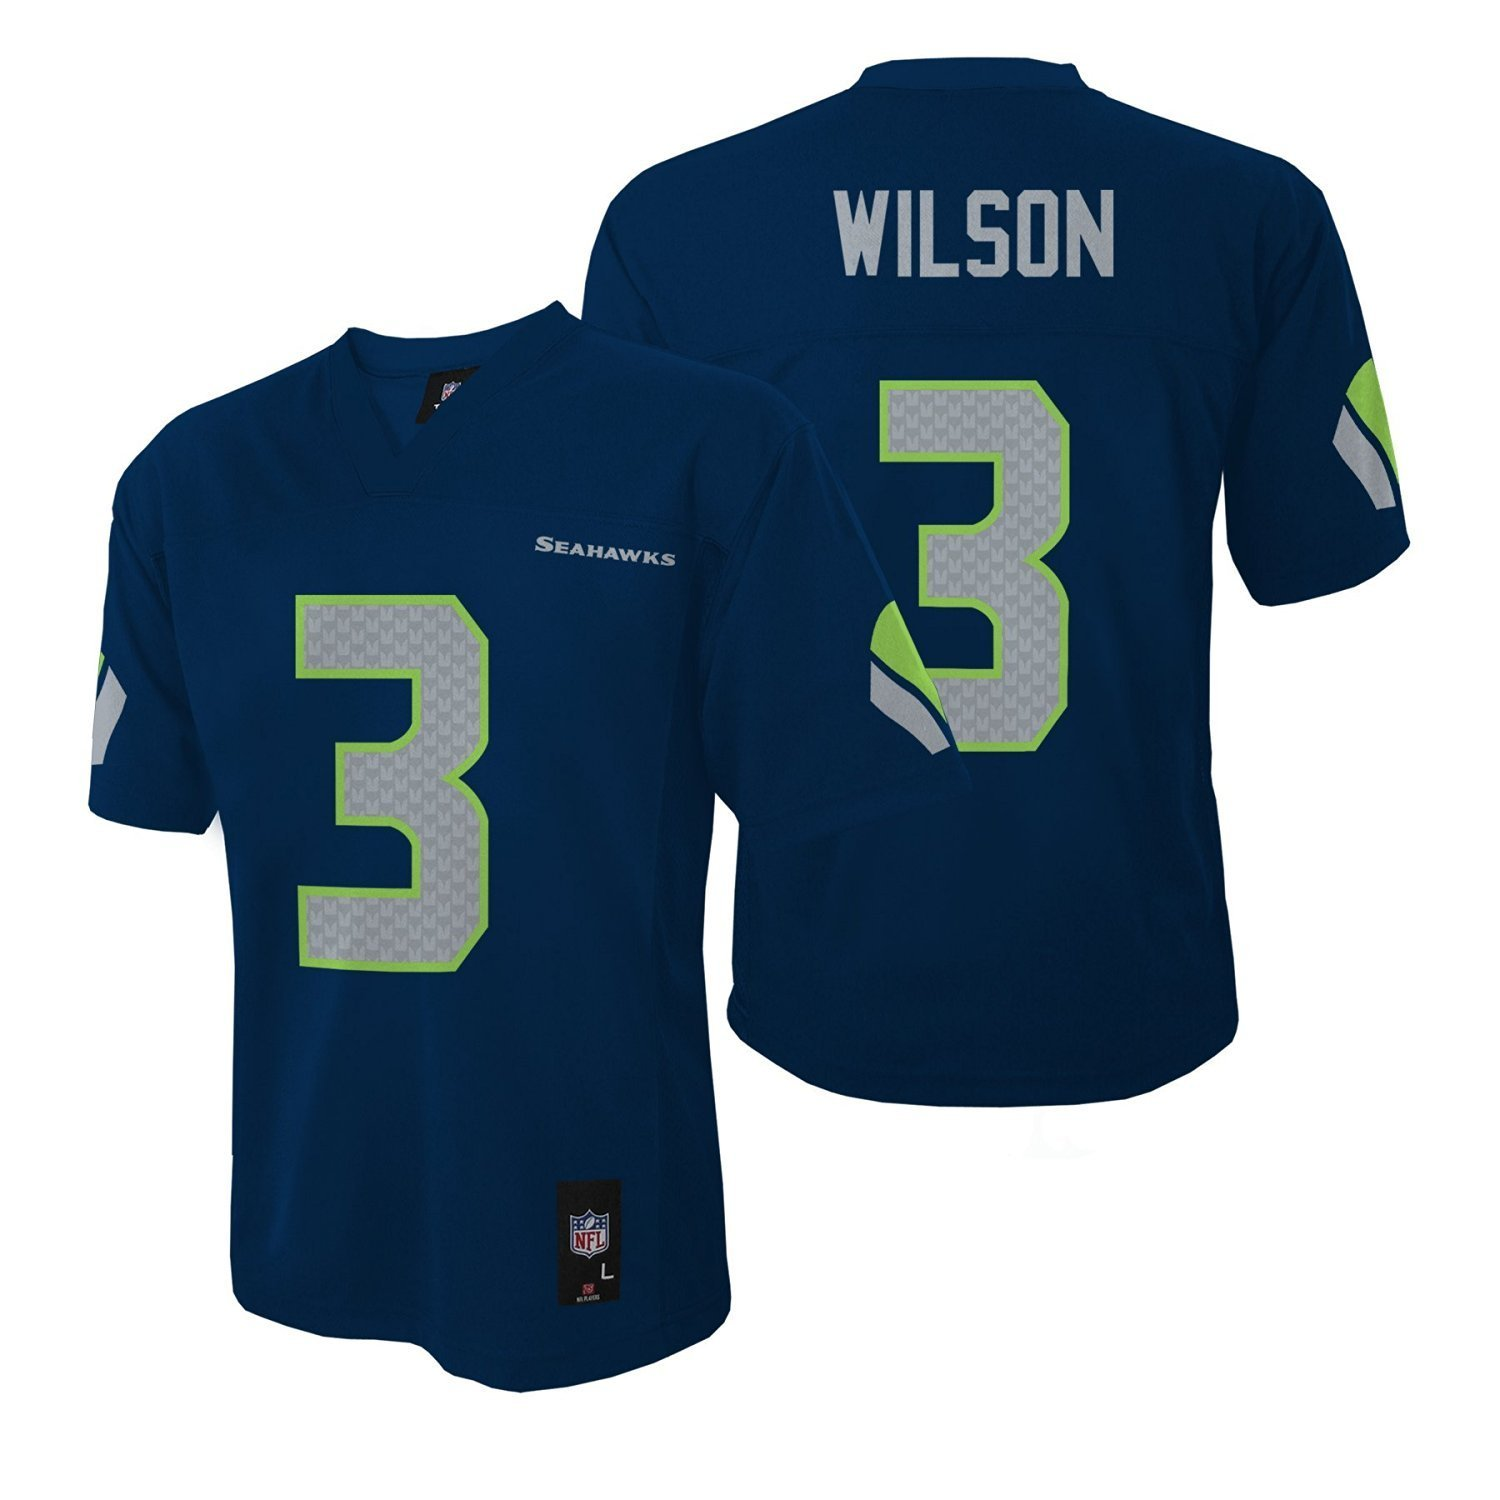 8d07b0340 Amazon.com   Outerstuff Russell Wilson Seattle Seahawks Youth Navy Jersey    Sports   Outdoors